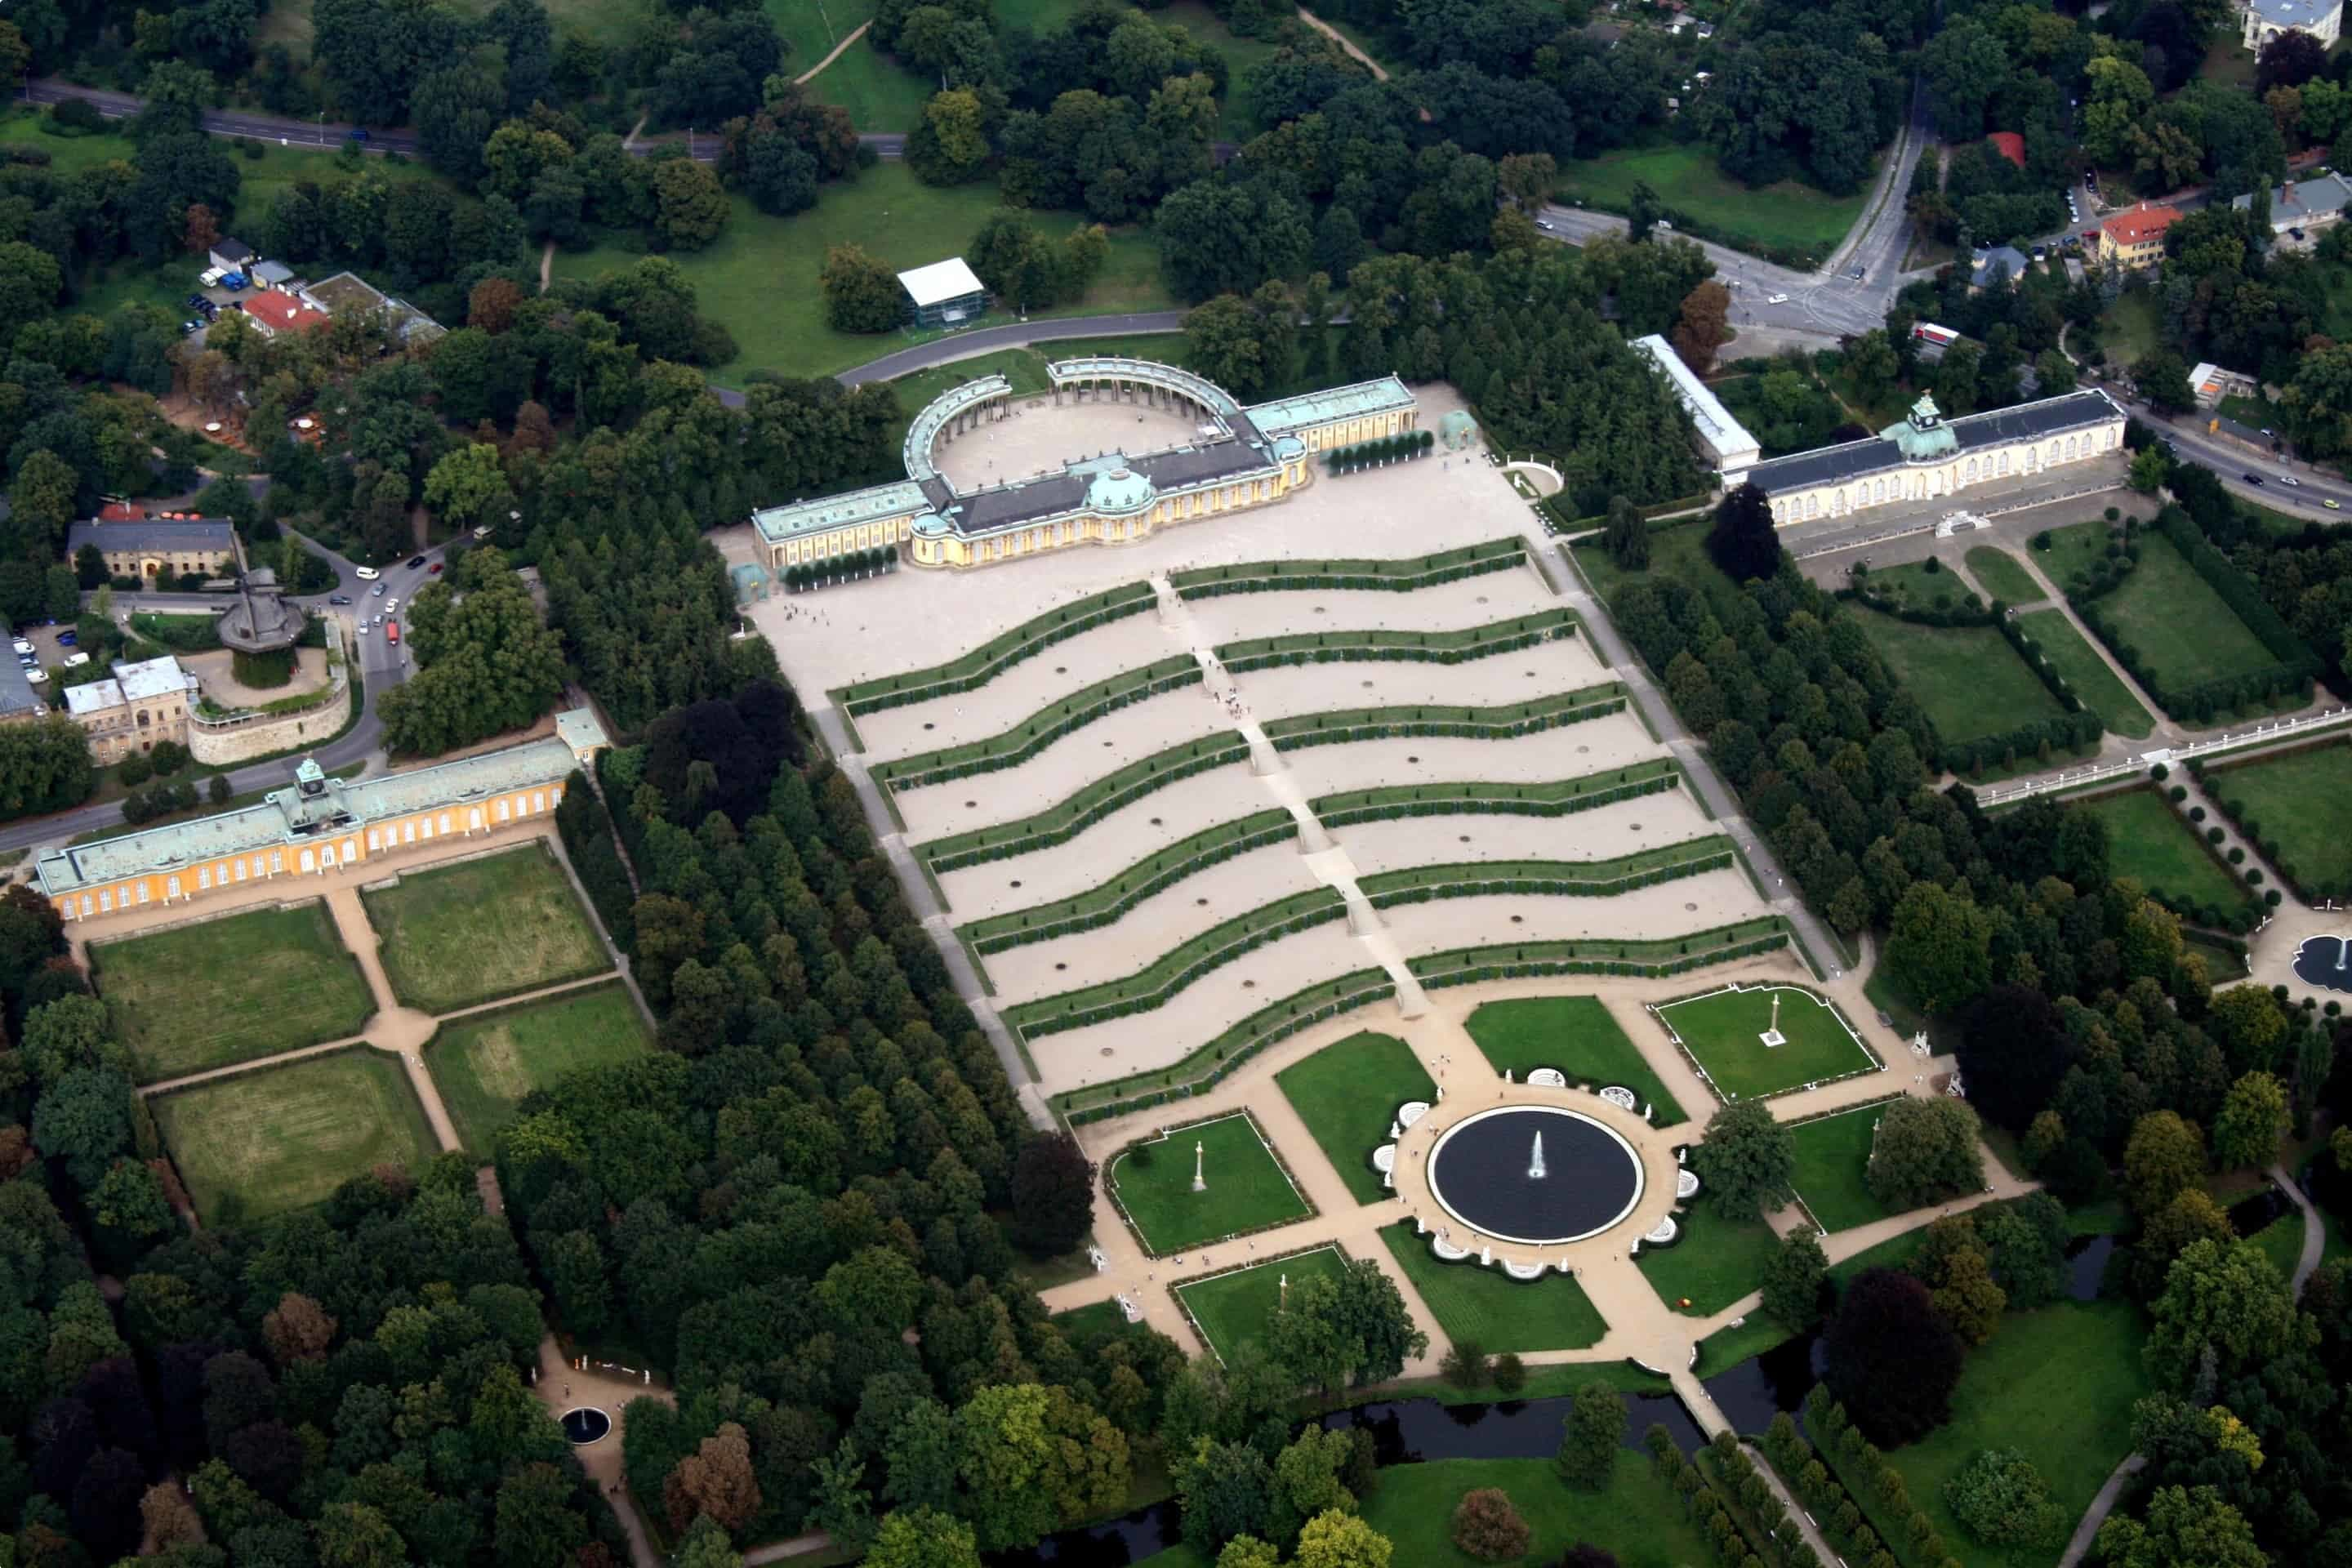 An aerial view of Sanssouci Palace